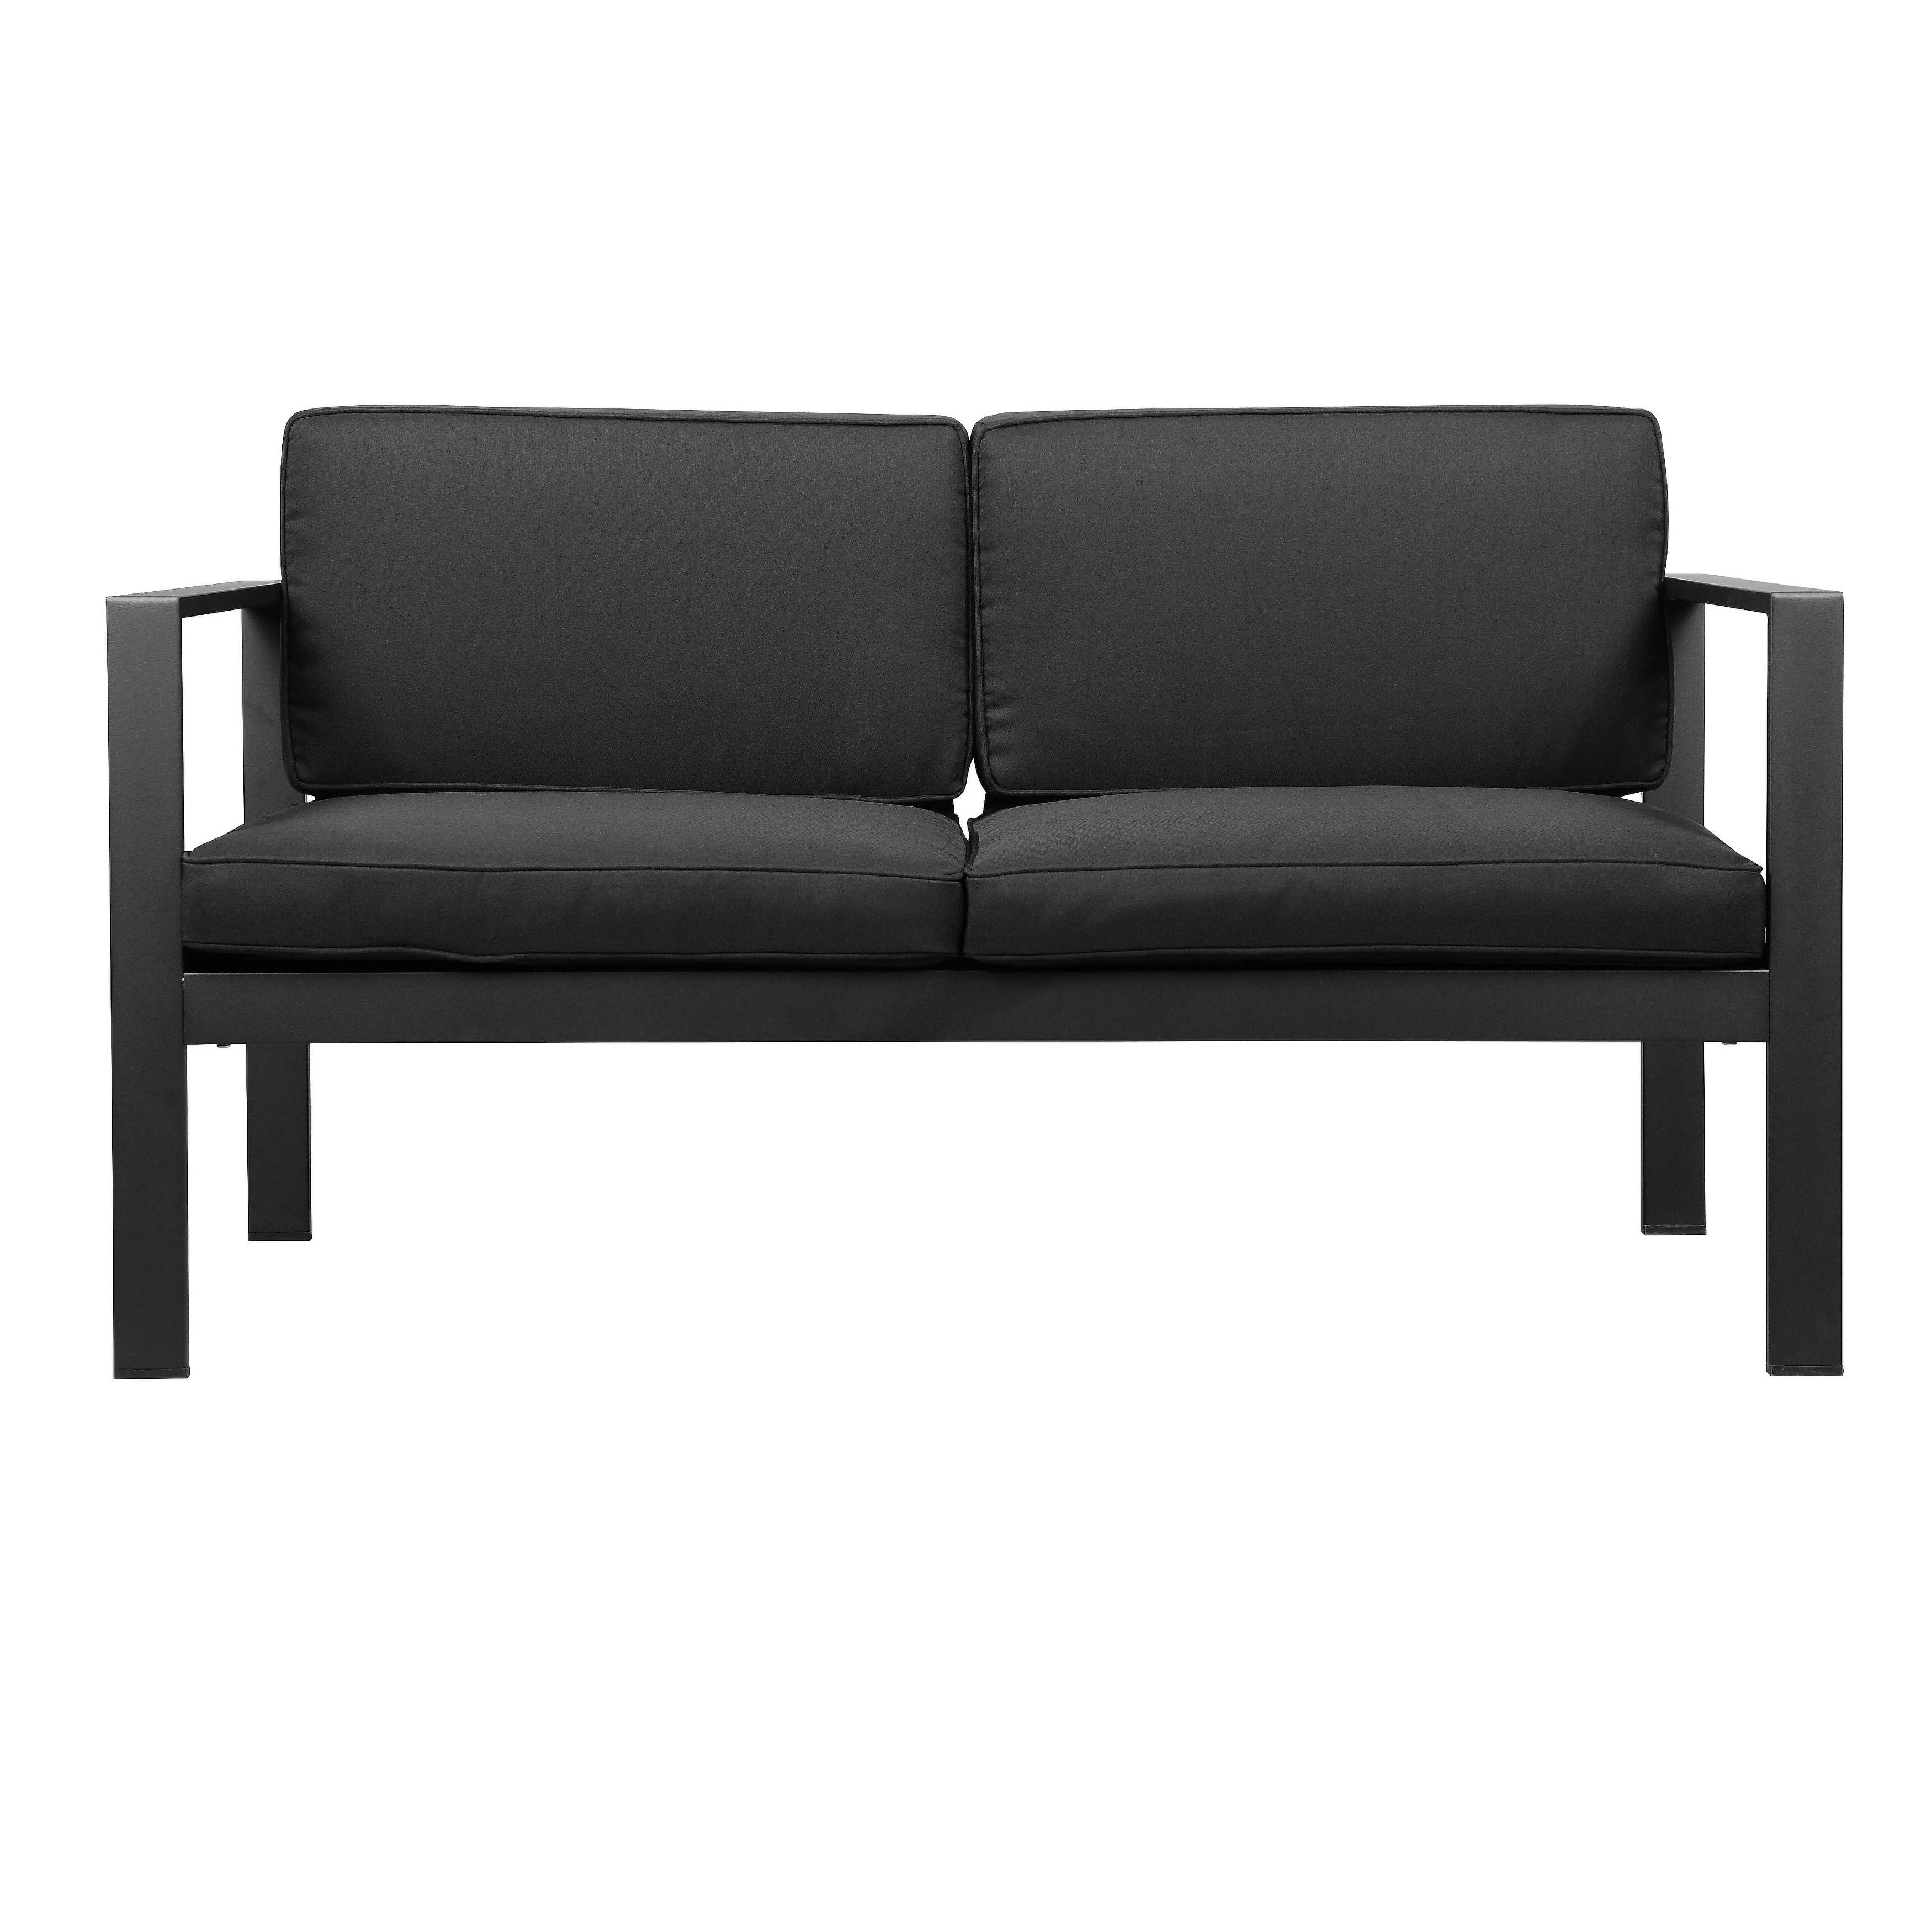 metal framed sofa with removable padded seat and back cushions black